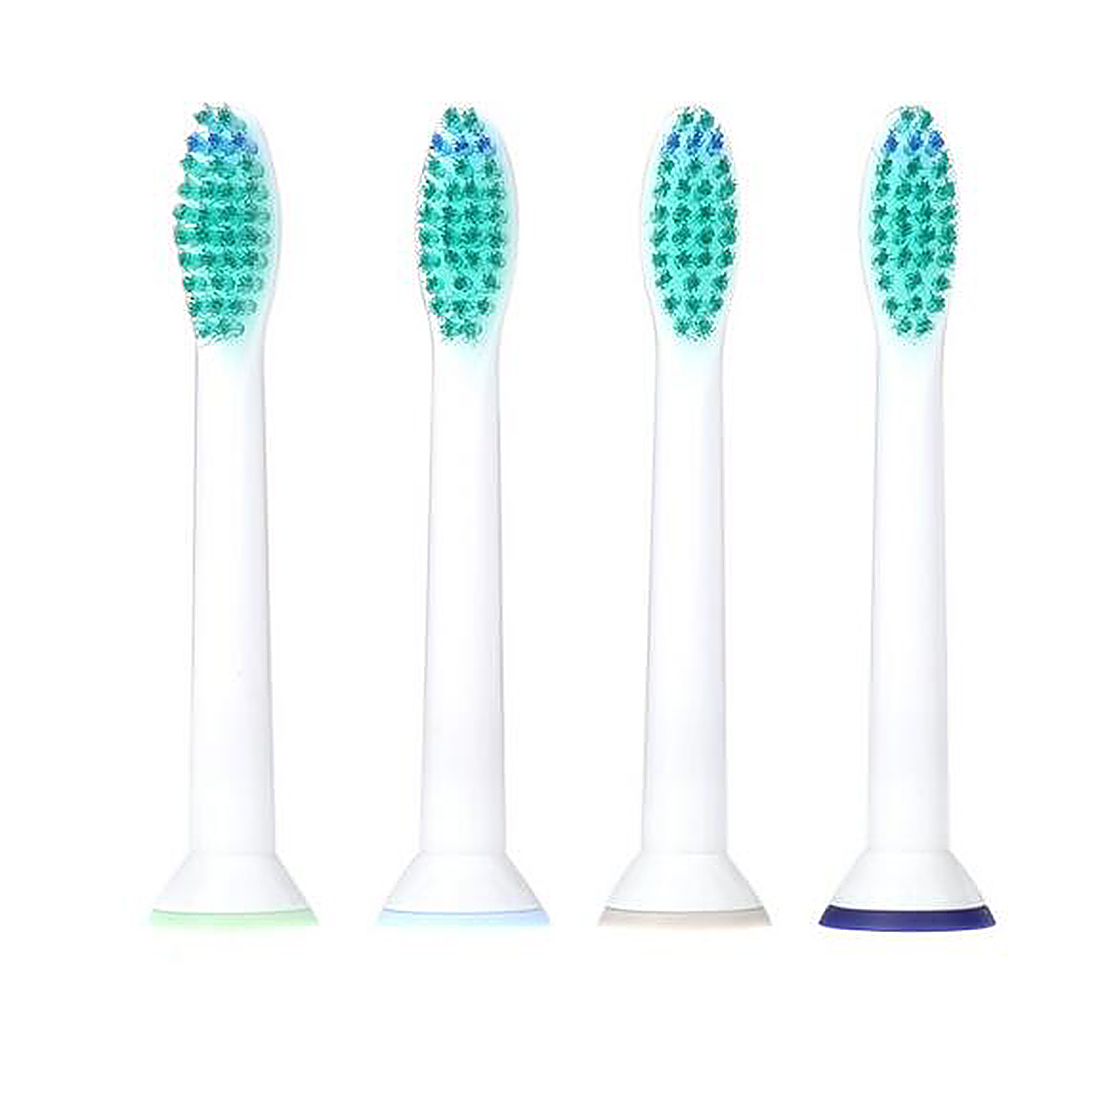 2016 Hot Electric Toothbrush Head Fits for Philips Sonicare P-HX-6014 Oral Hygiene 4Pcs/set Toothbrush Replacement Heads(China (Mainland))